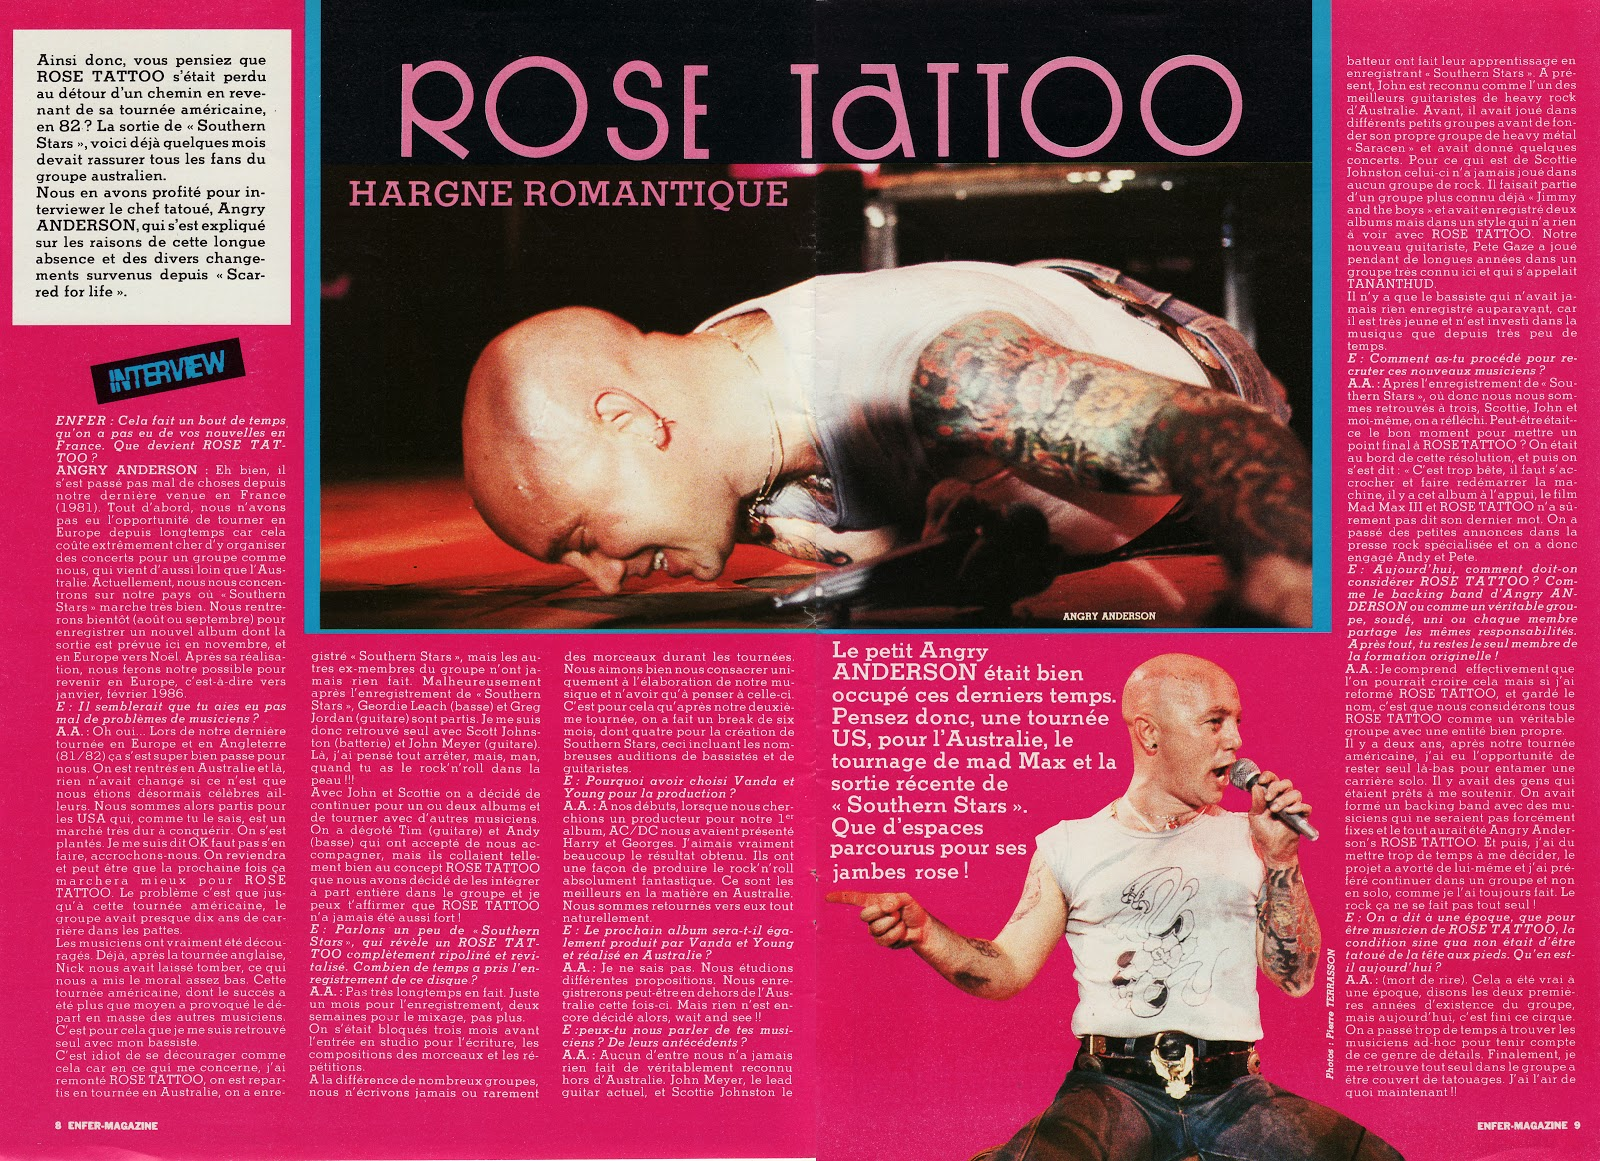 ROSE TATTOO Hargne romantique (Enfer Magazine) Archive à lire Bangry10